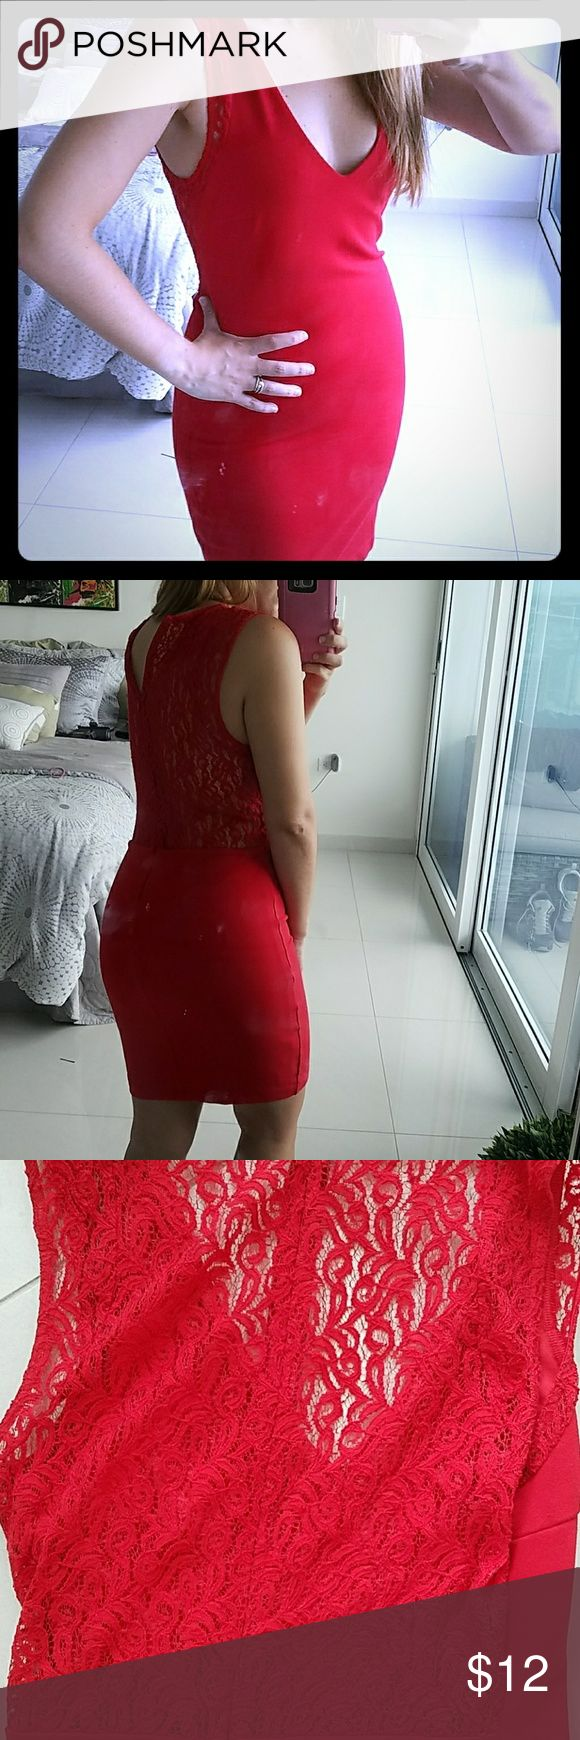 Trafaluc by ZARA red dress M Gorgeous body fitting dress runs a bit small more like a S. Has an awesome red lace back and some lace details in the front shoulders. Zara Dresses Mini